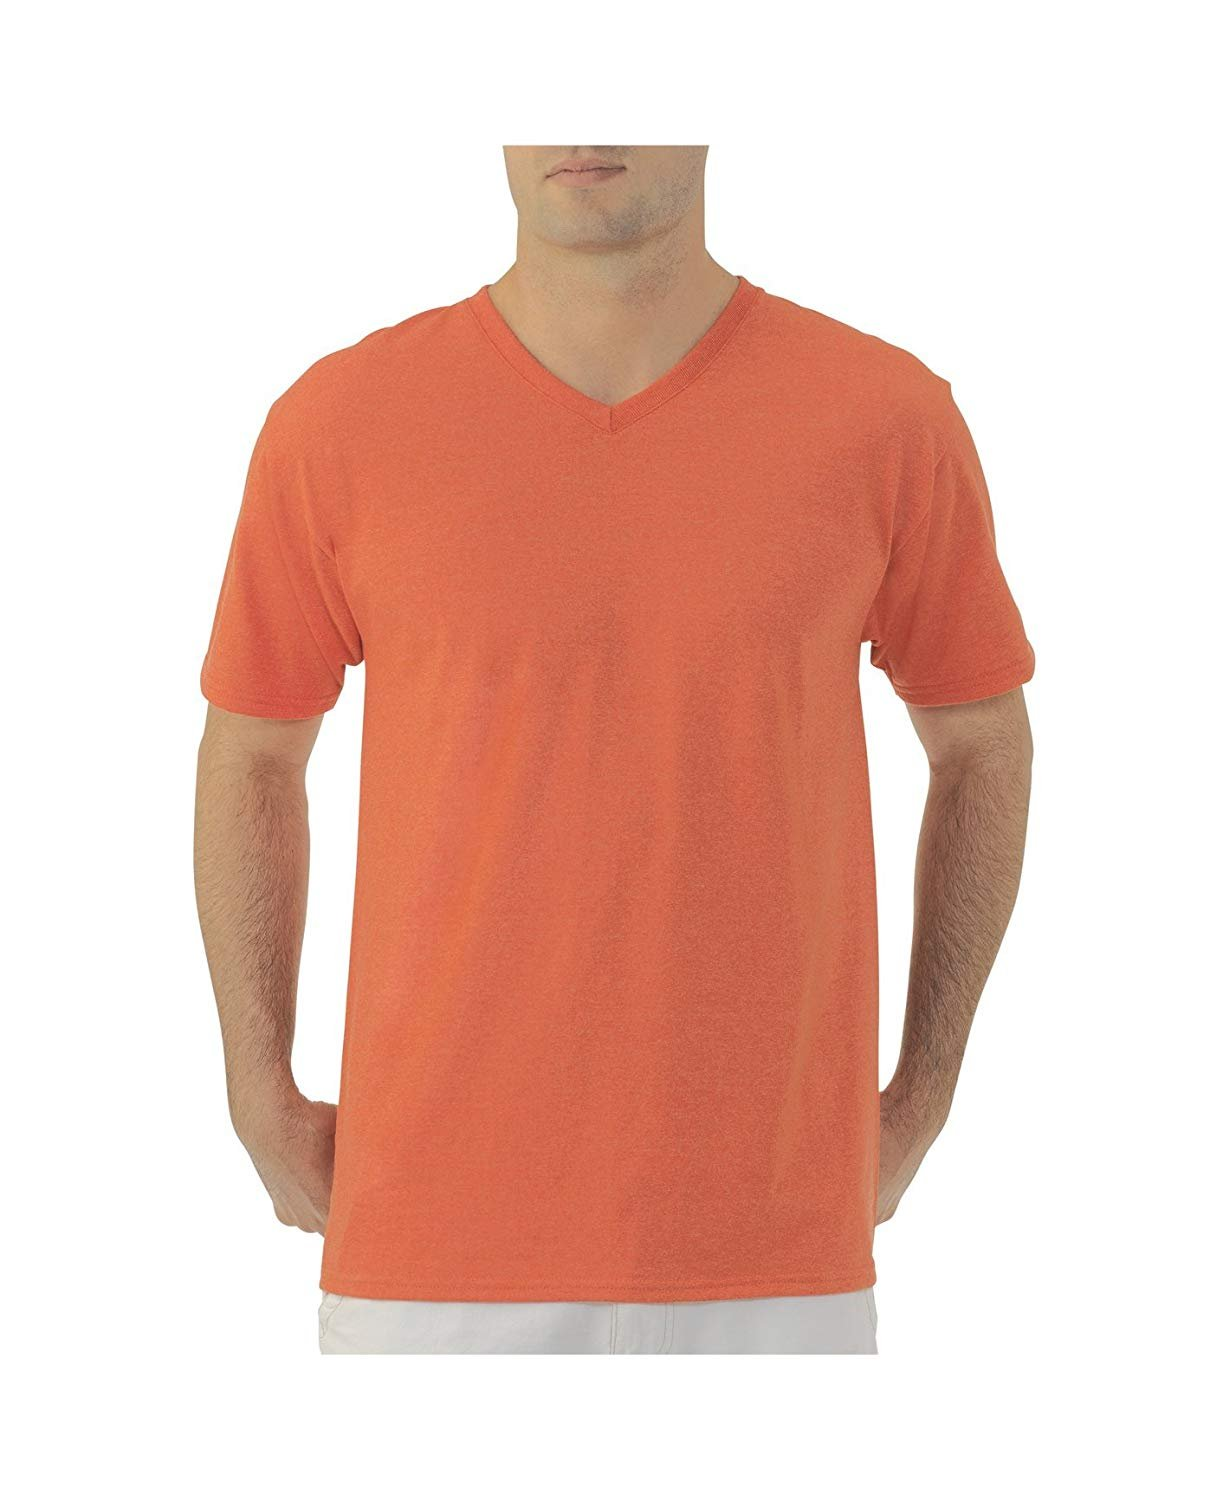 Fruit Of The Loom Mens V Neck T Shirt Assorted Colors Size 2x 3x